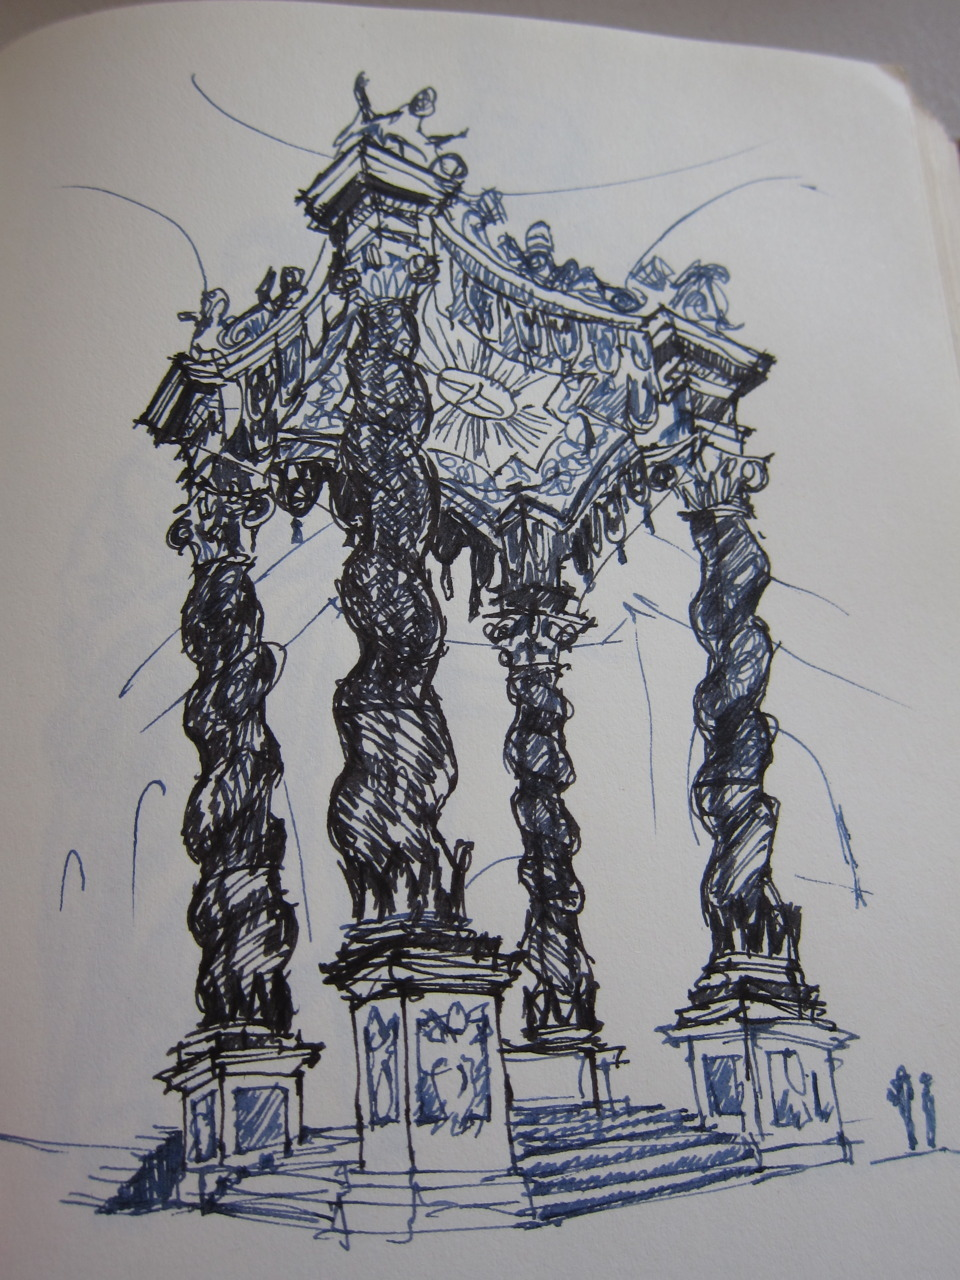 Sketch of Bernini's Baldacchino in St. Peter's, Rome. If you look closely at the real thing, you can see Boromini's hand in it.